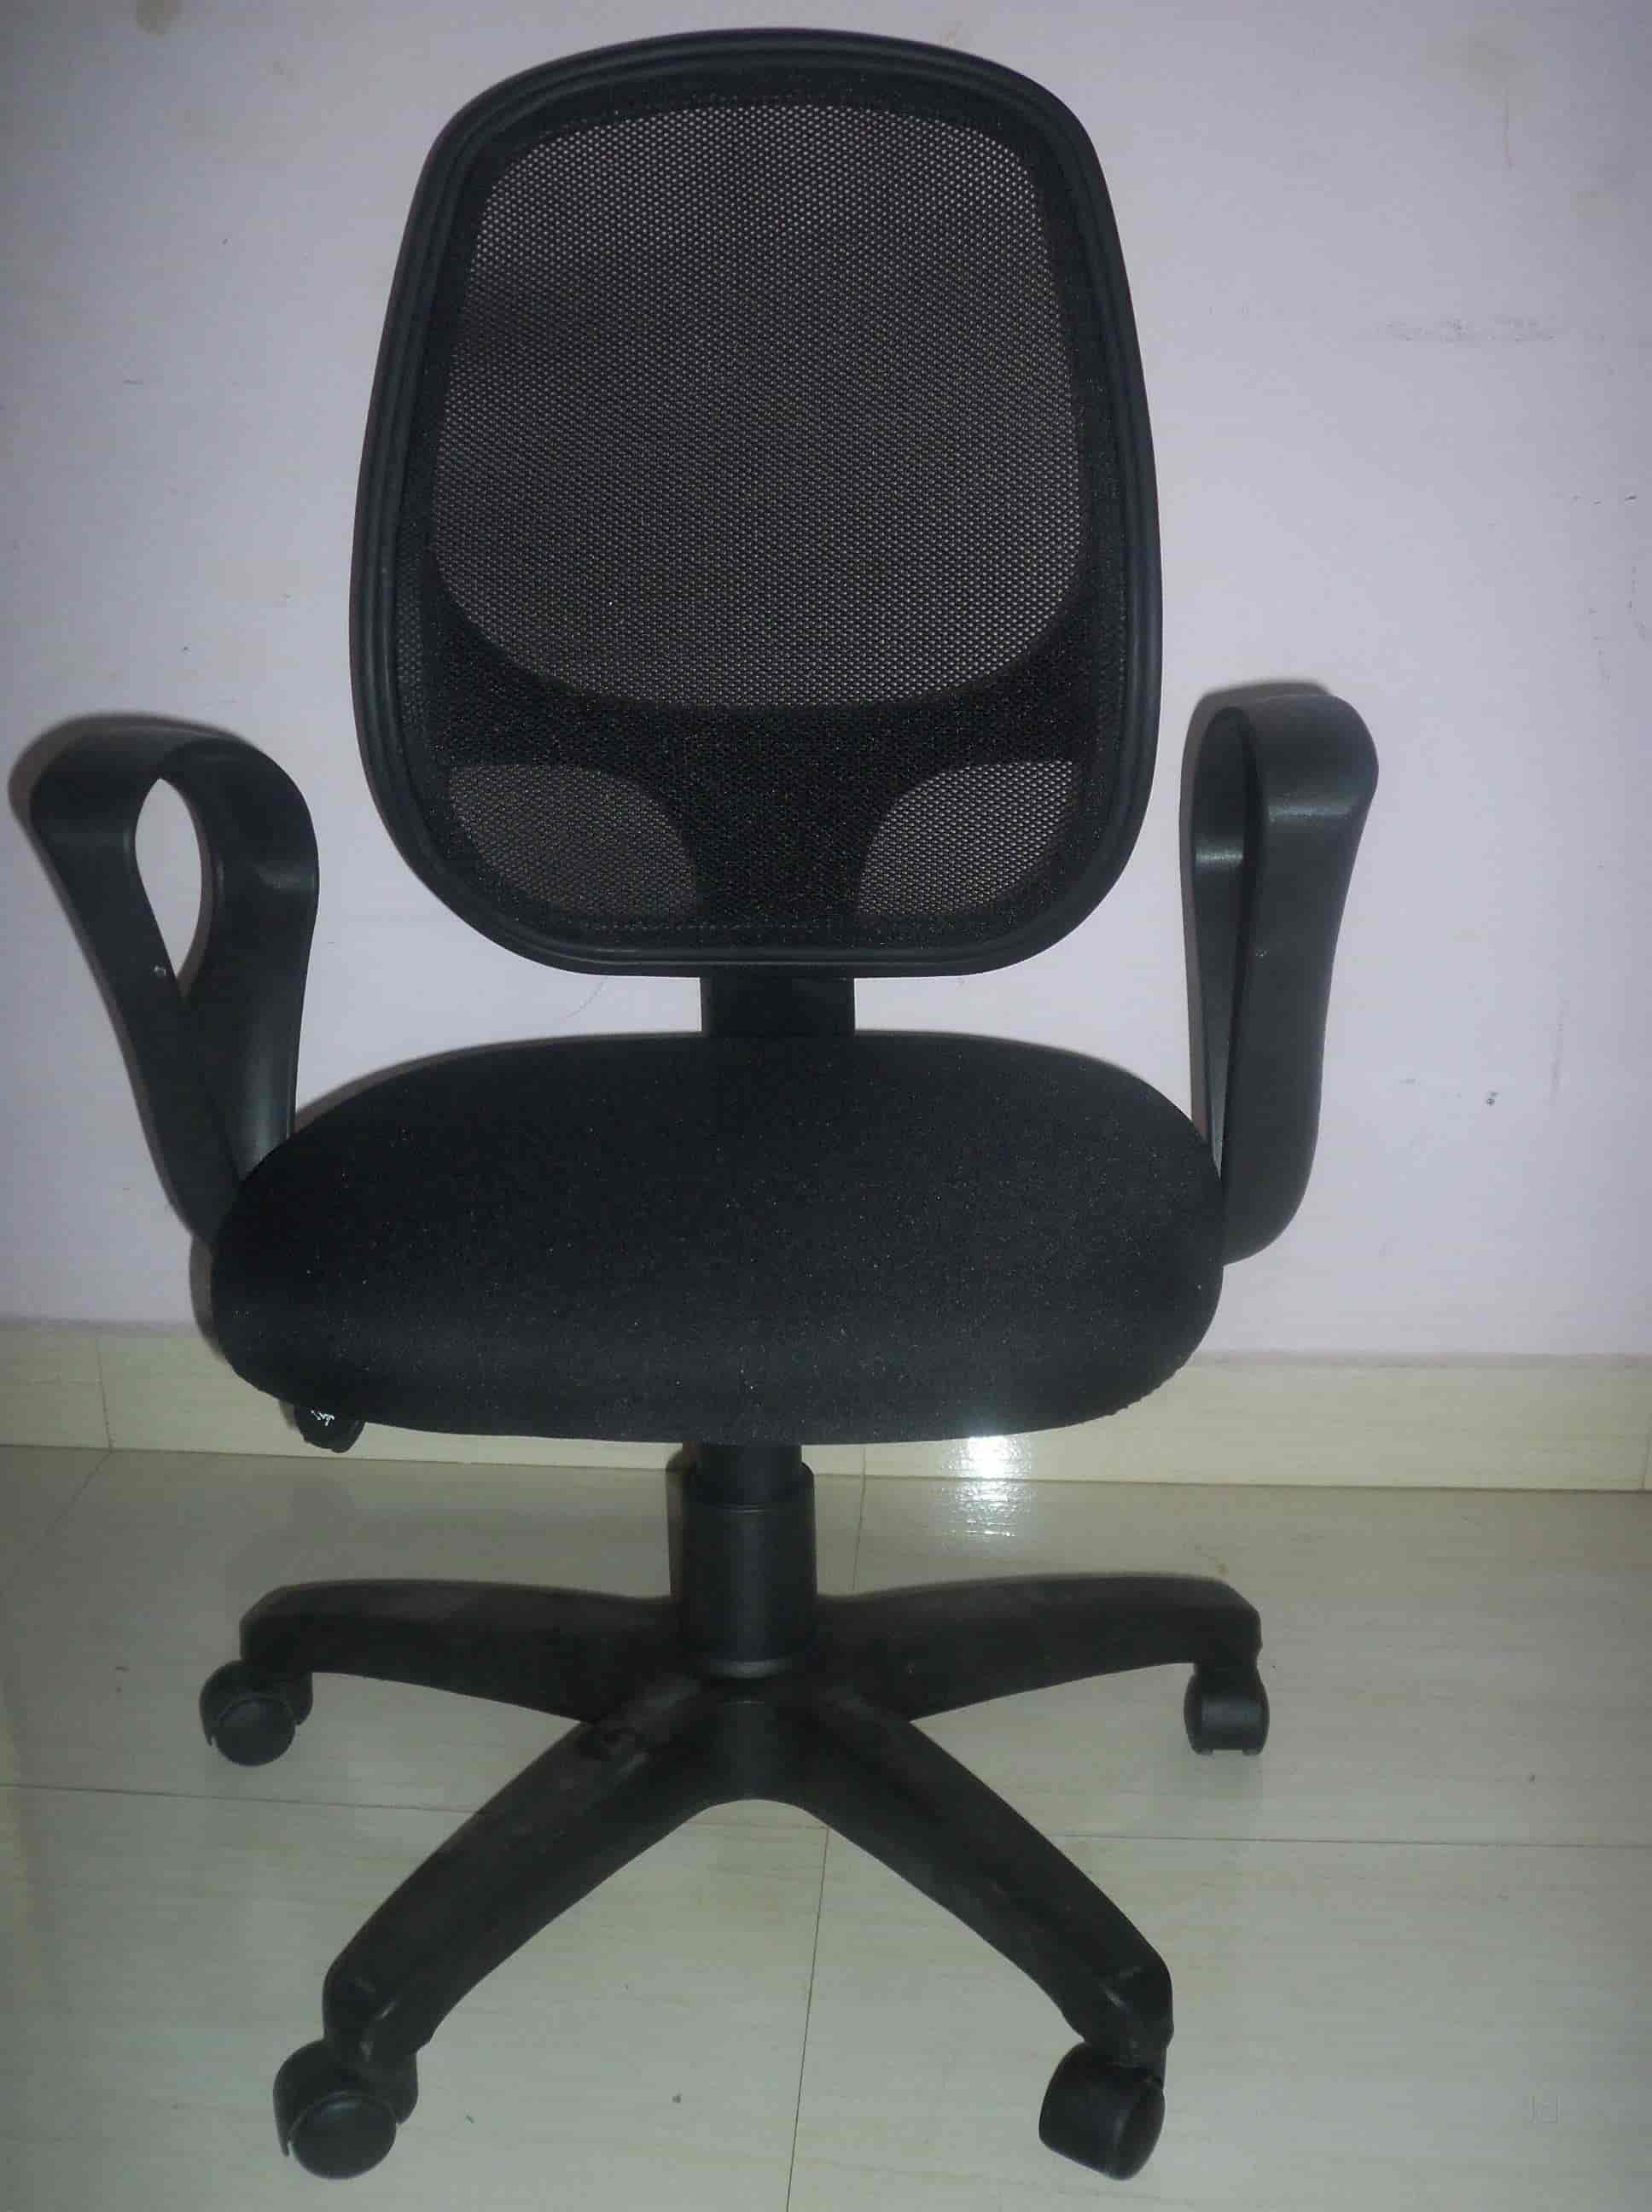 revolving chair dealers in chennai fabric to cover dining room chairs rani photos nerkundram koyambedu pictures images rc 802